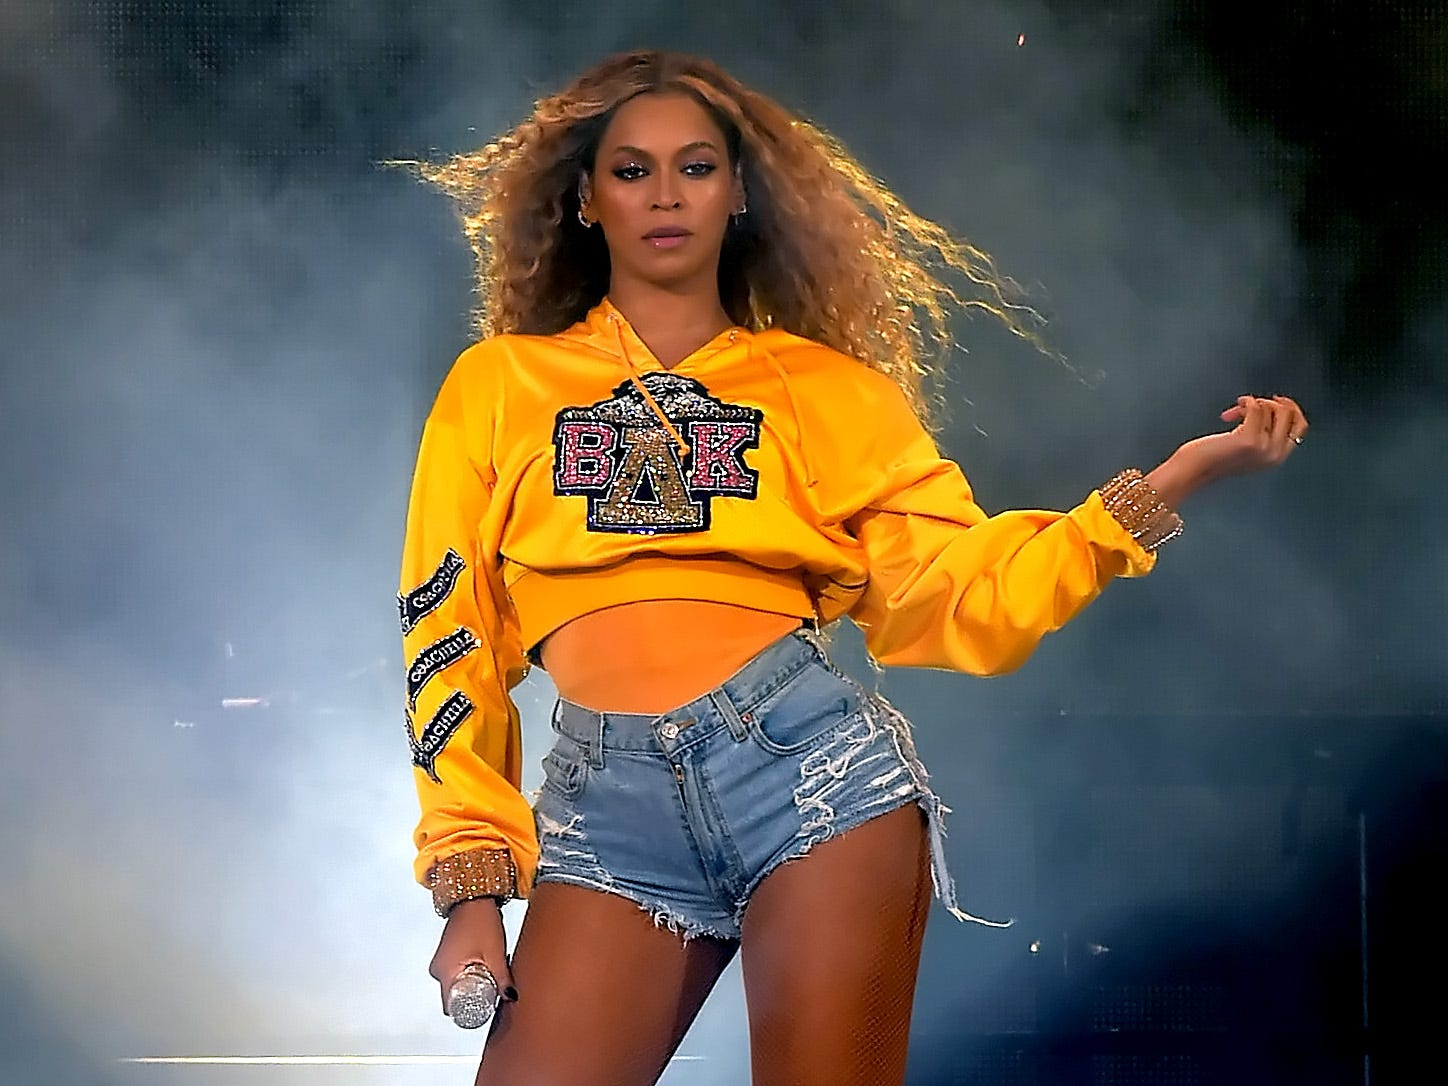 Beyonce pens powerful open letter to Nelson Mandela ahead of Global Citizen Festival